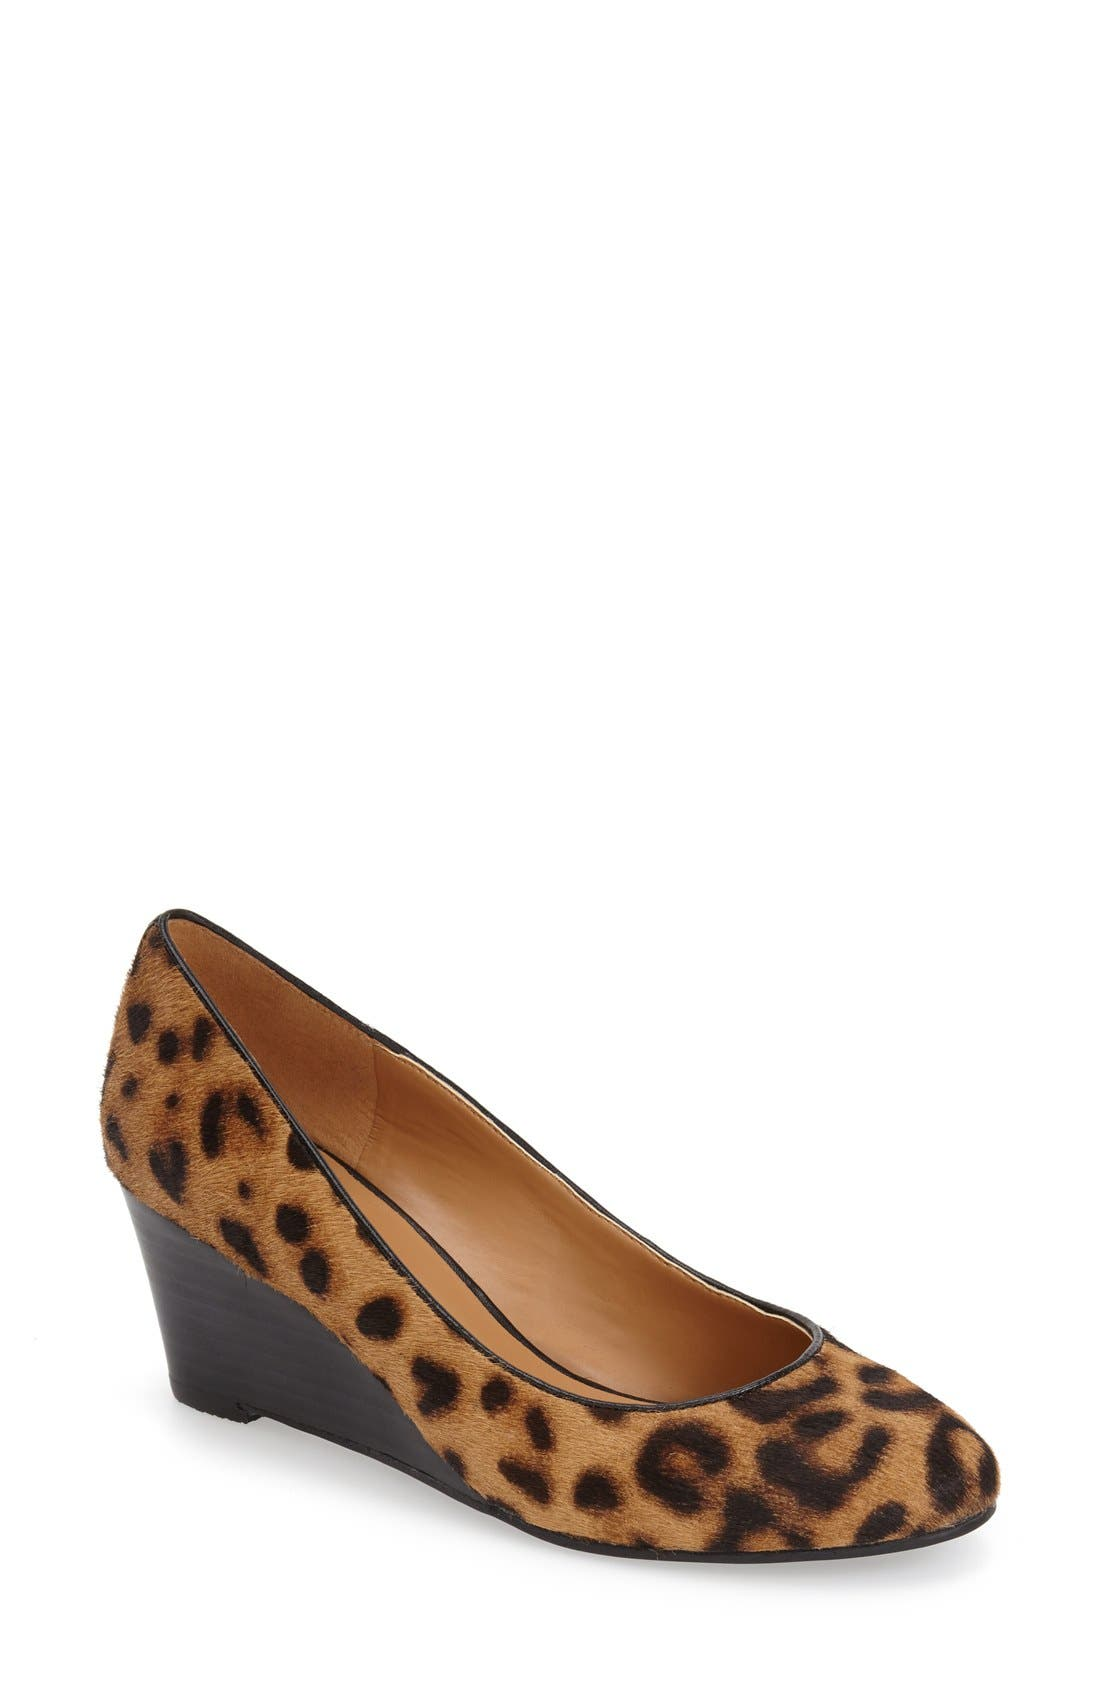 Alternate Image 1 Selected - Nine West 'Ispy' Wedge Pump (Women)